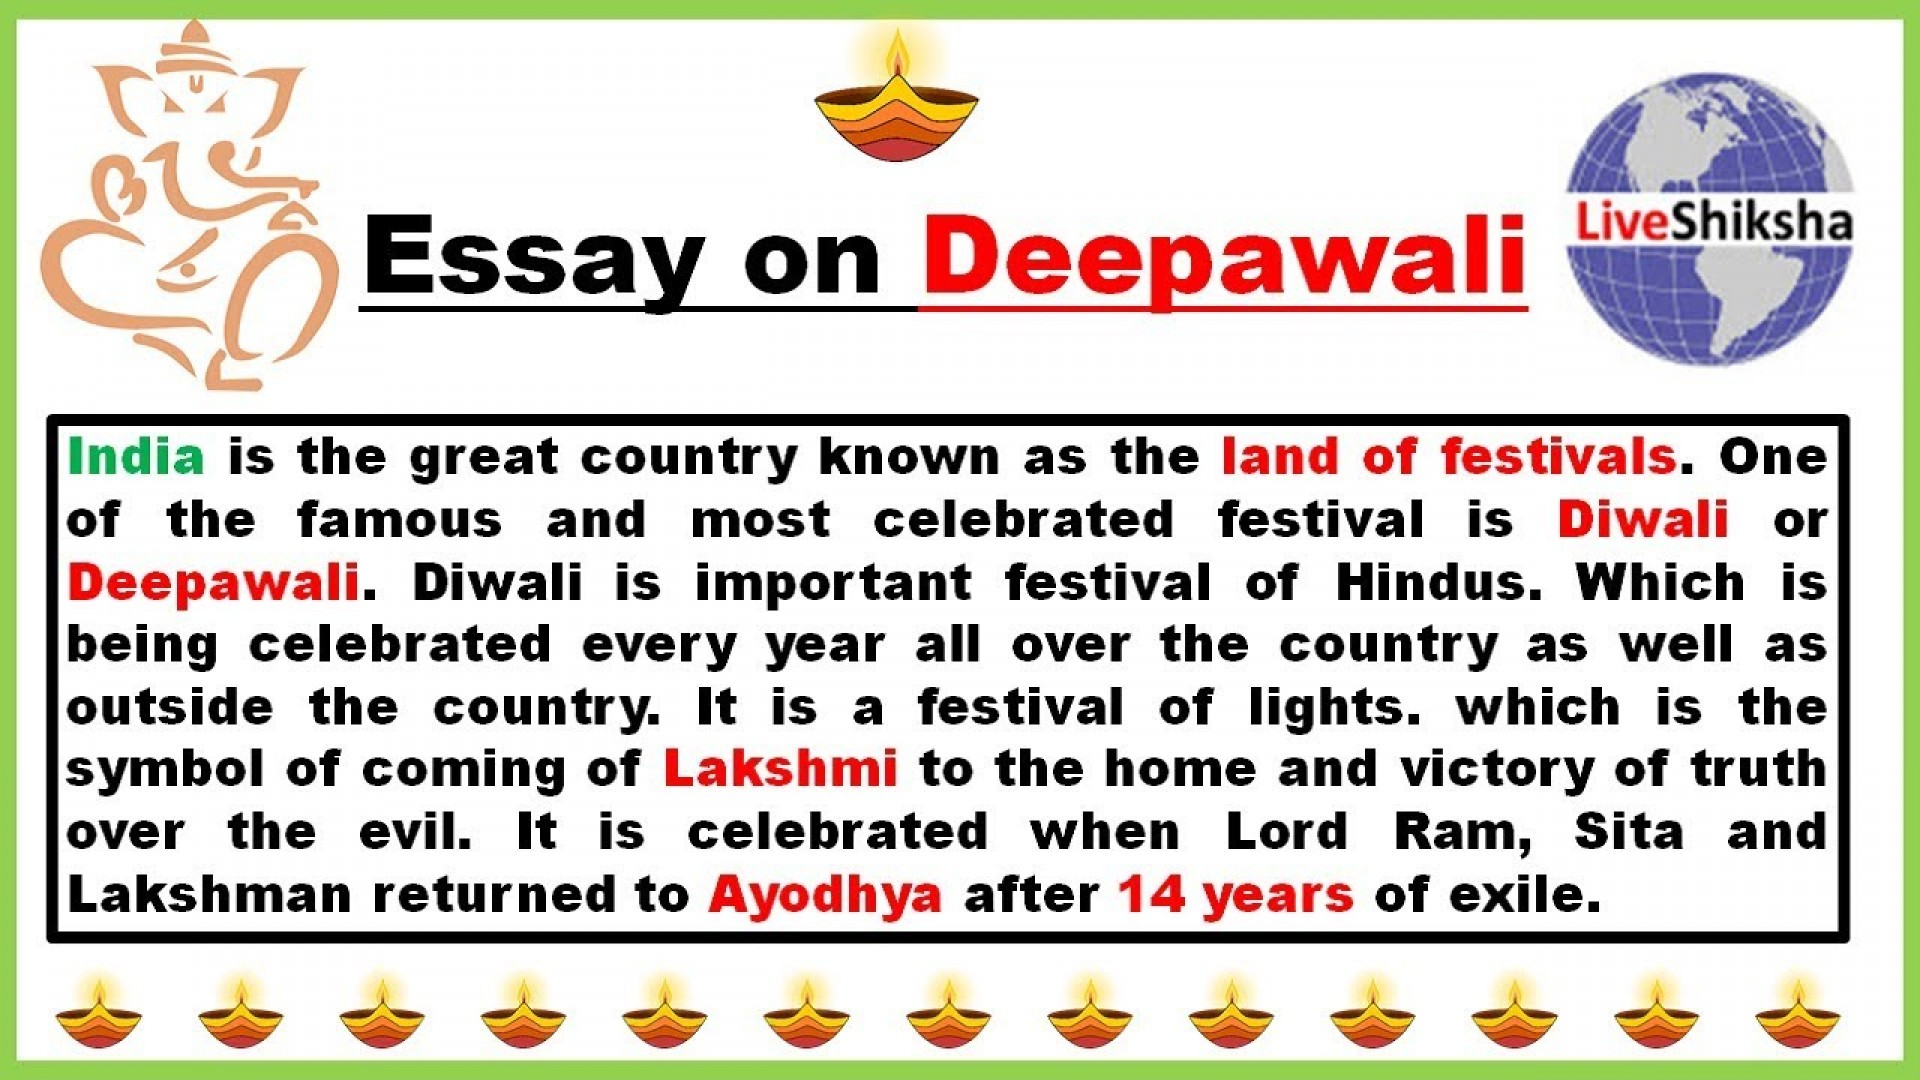 001 Simple Essay On Diwali Example Striking For Class 1 My Favourite Festival 1920